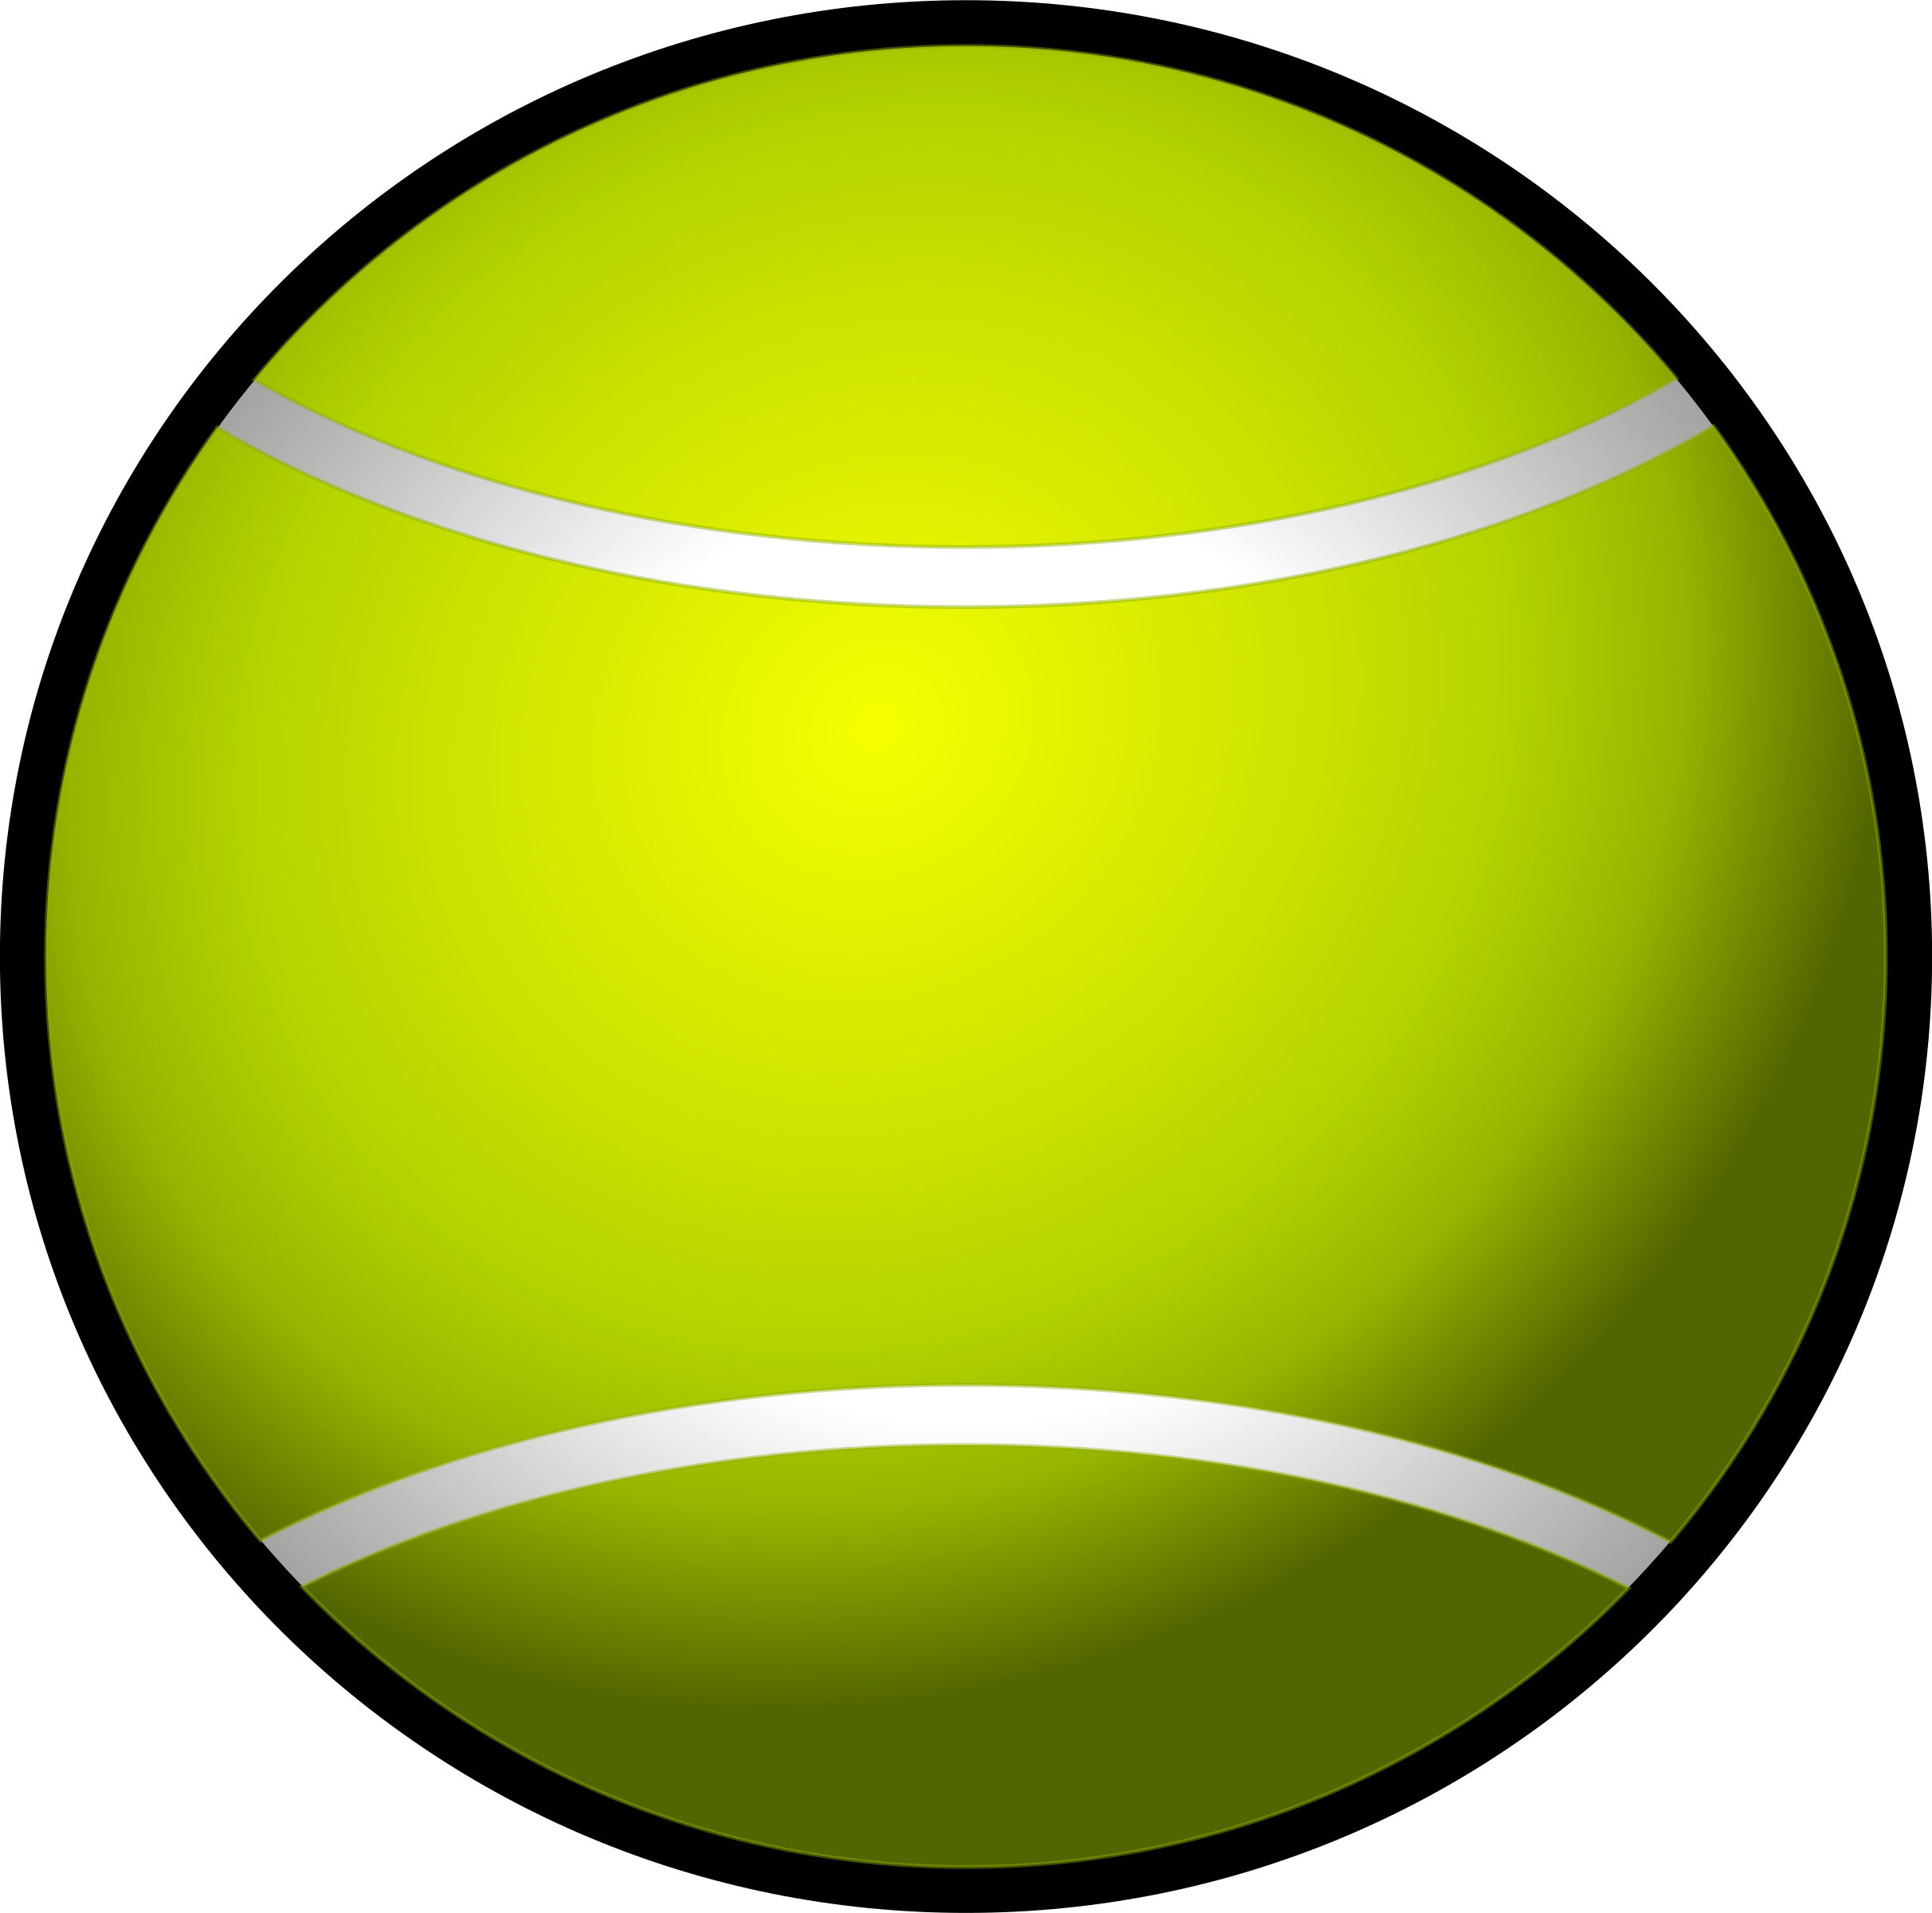 Tennis ball clipart png. Simple big image